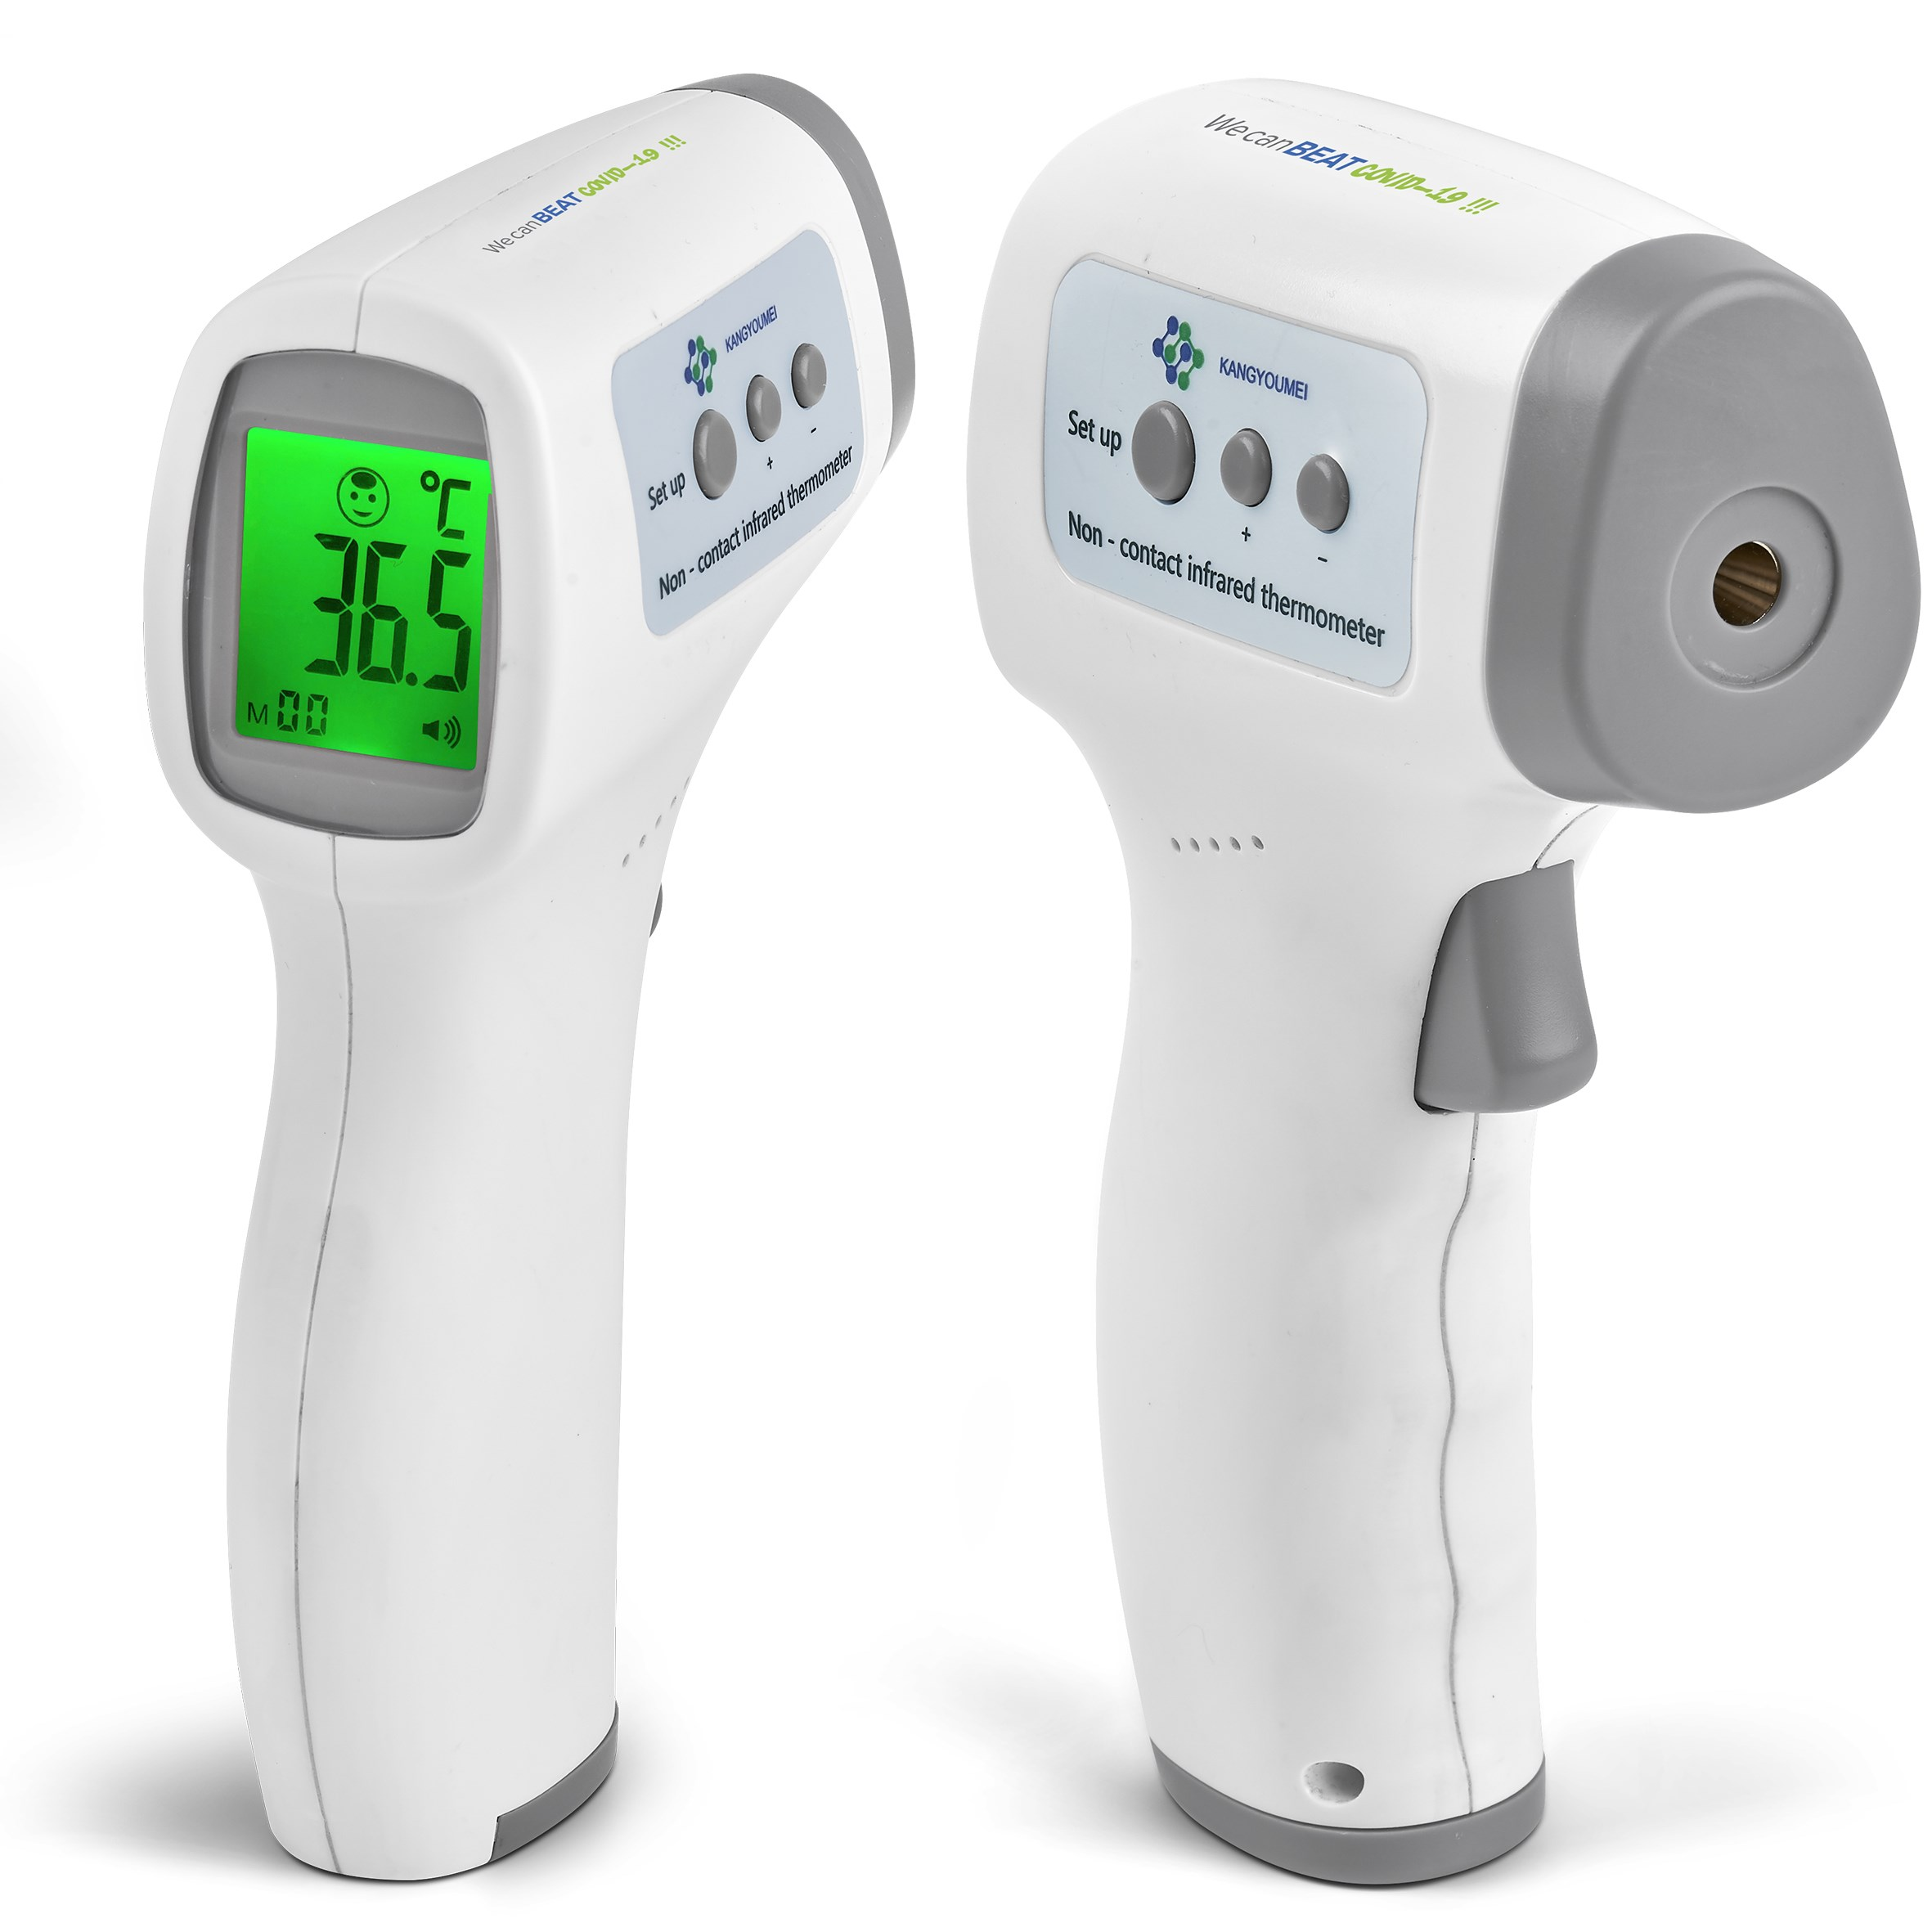 Calor Infrared Thermometer